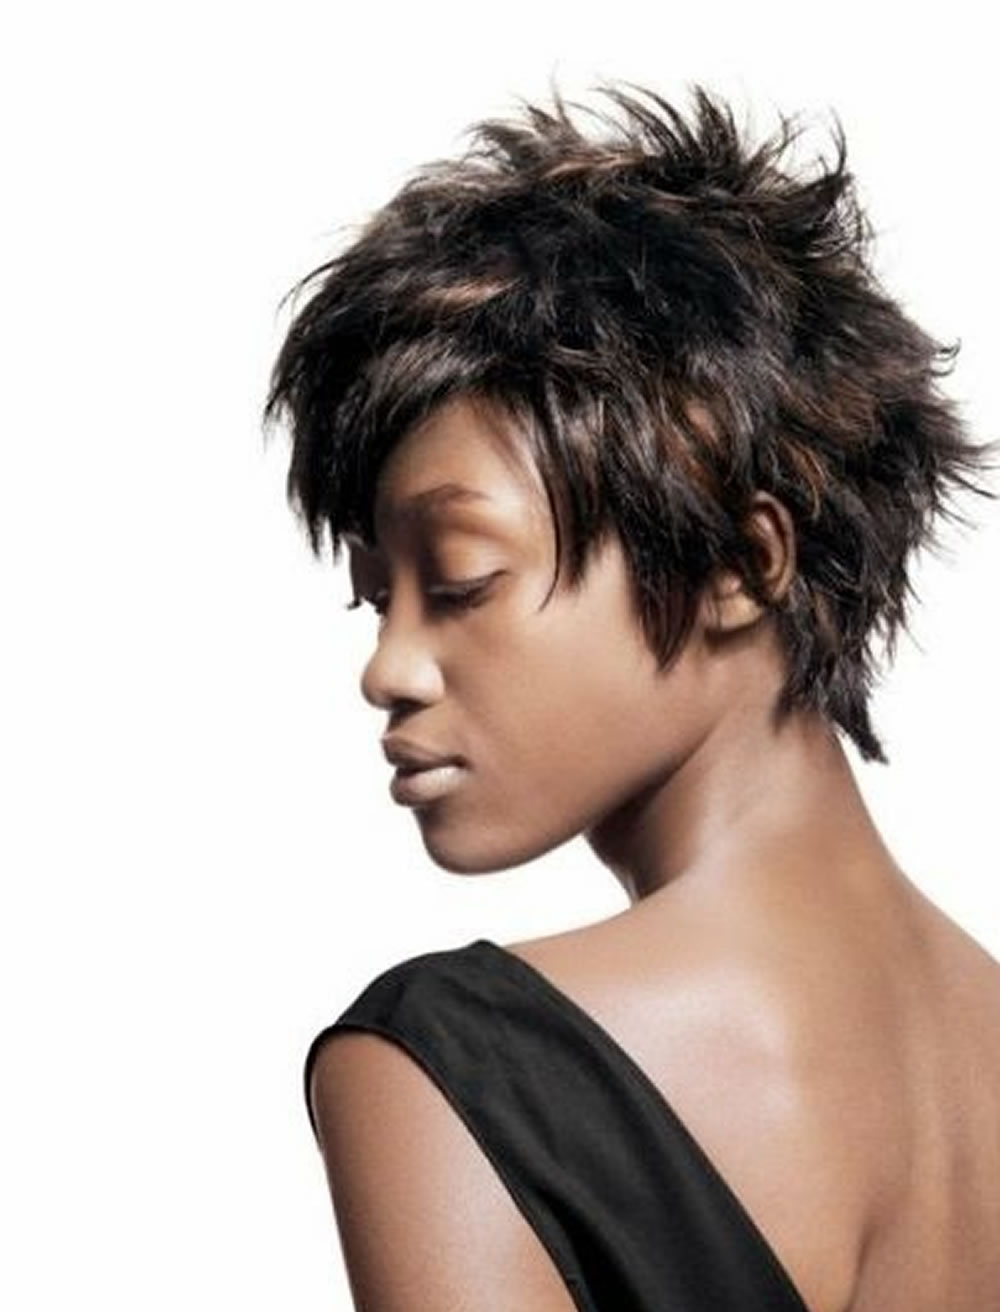 Glamorous Messy Short Haircut For Black Women – Hairstyles Inside Messy Short Haircuts For Women (Gallery 8 of 25)